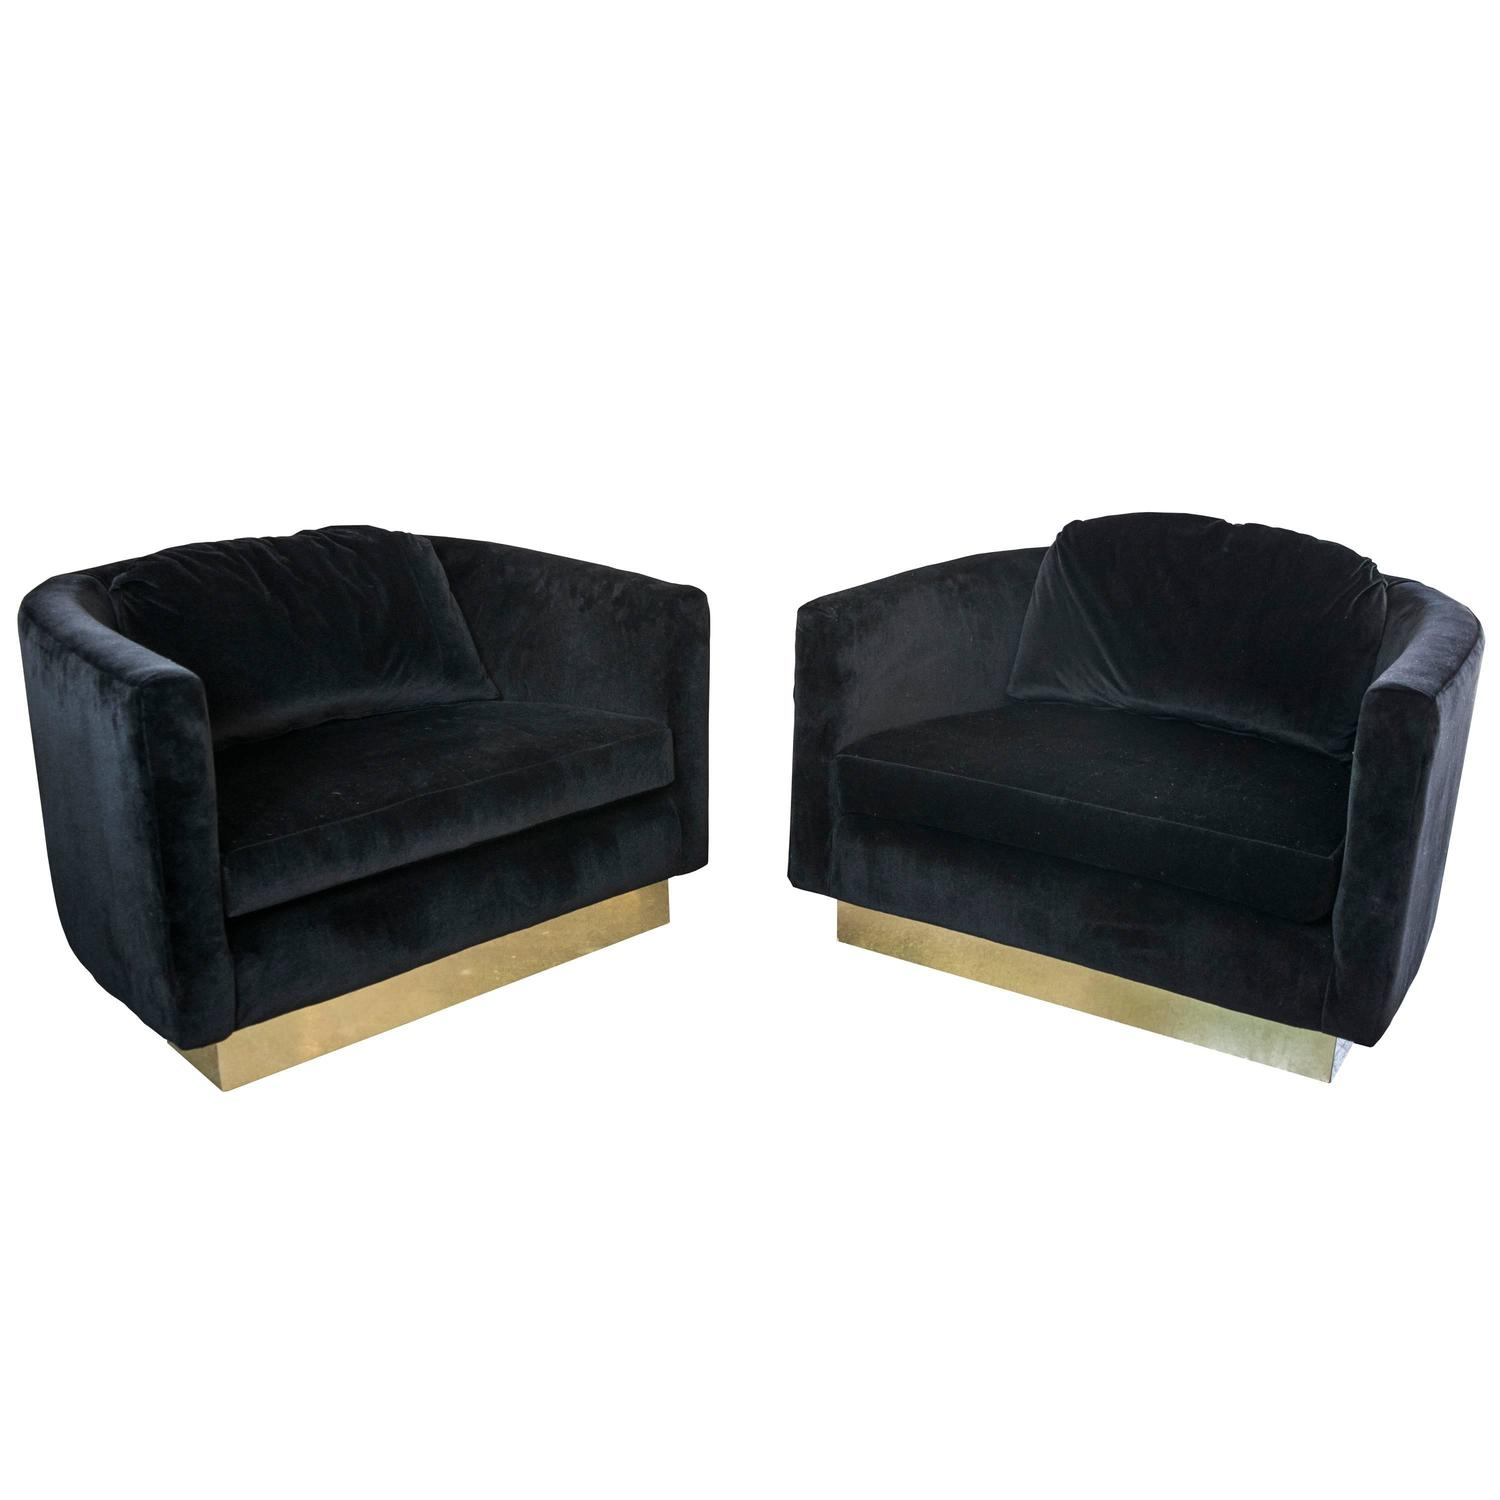 black oversized chair electric recliner motors parts velvet swivel chairs with brass plinths at